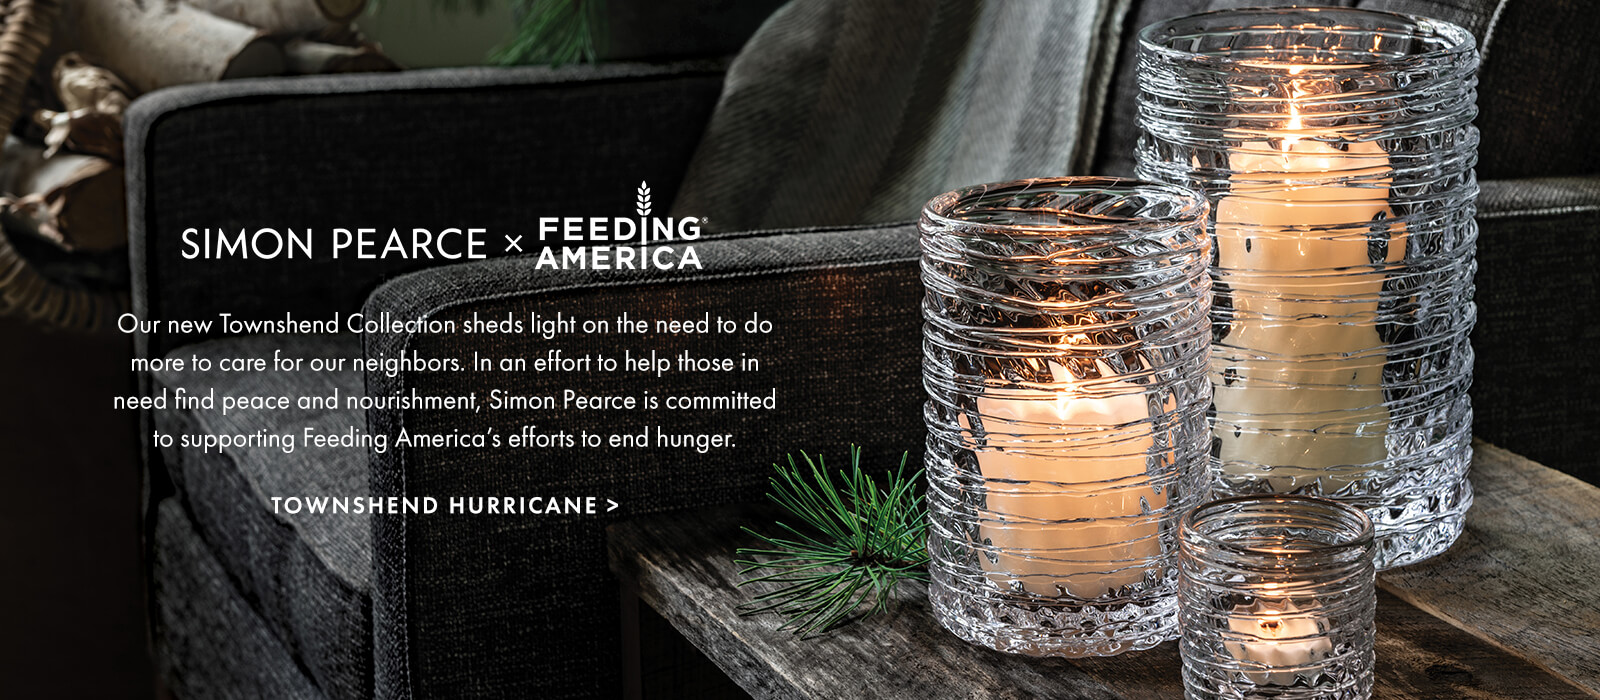 Our new Townshend Collection sheds light on the need to do more to care for our neighbors. In an effort to help those in need find peace and nourishment, Simon Pearce is committed to supporting Feeding America's efforts to end hunger. SHOP TOWNSHEND >